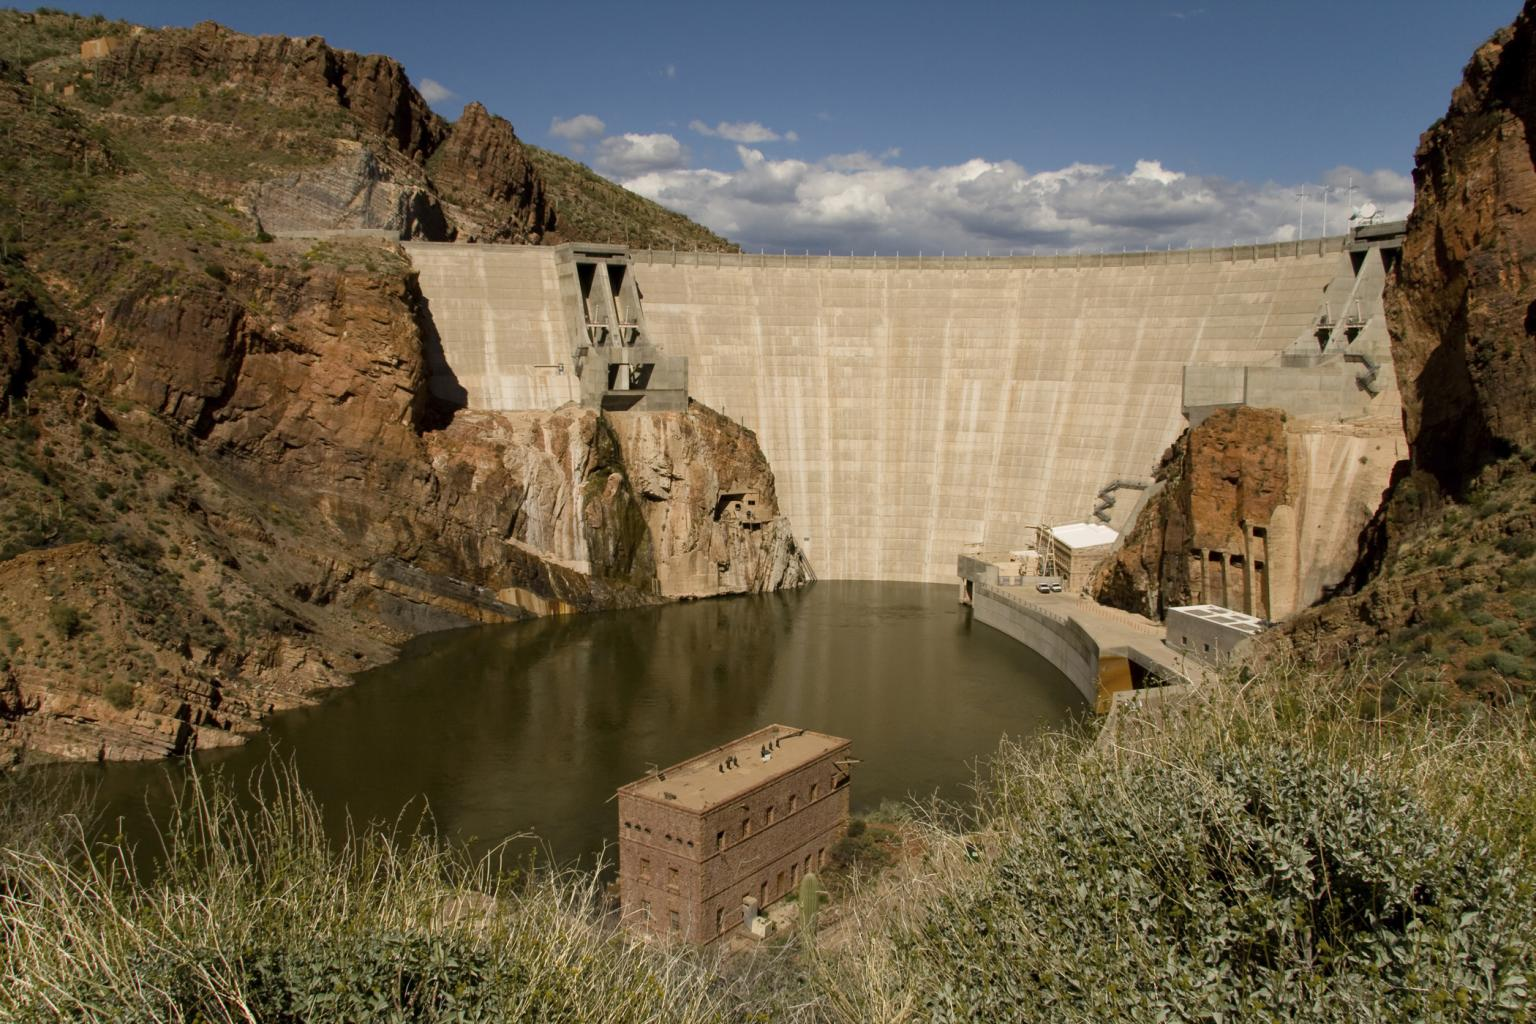 Located near Phoenix, Arizona, construction of the Roosevelt Dam on the Salt River started in 1906 and was completed in 1911